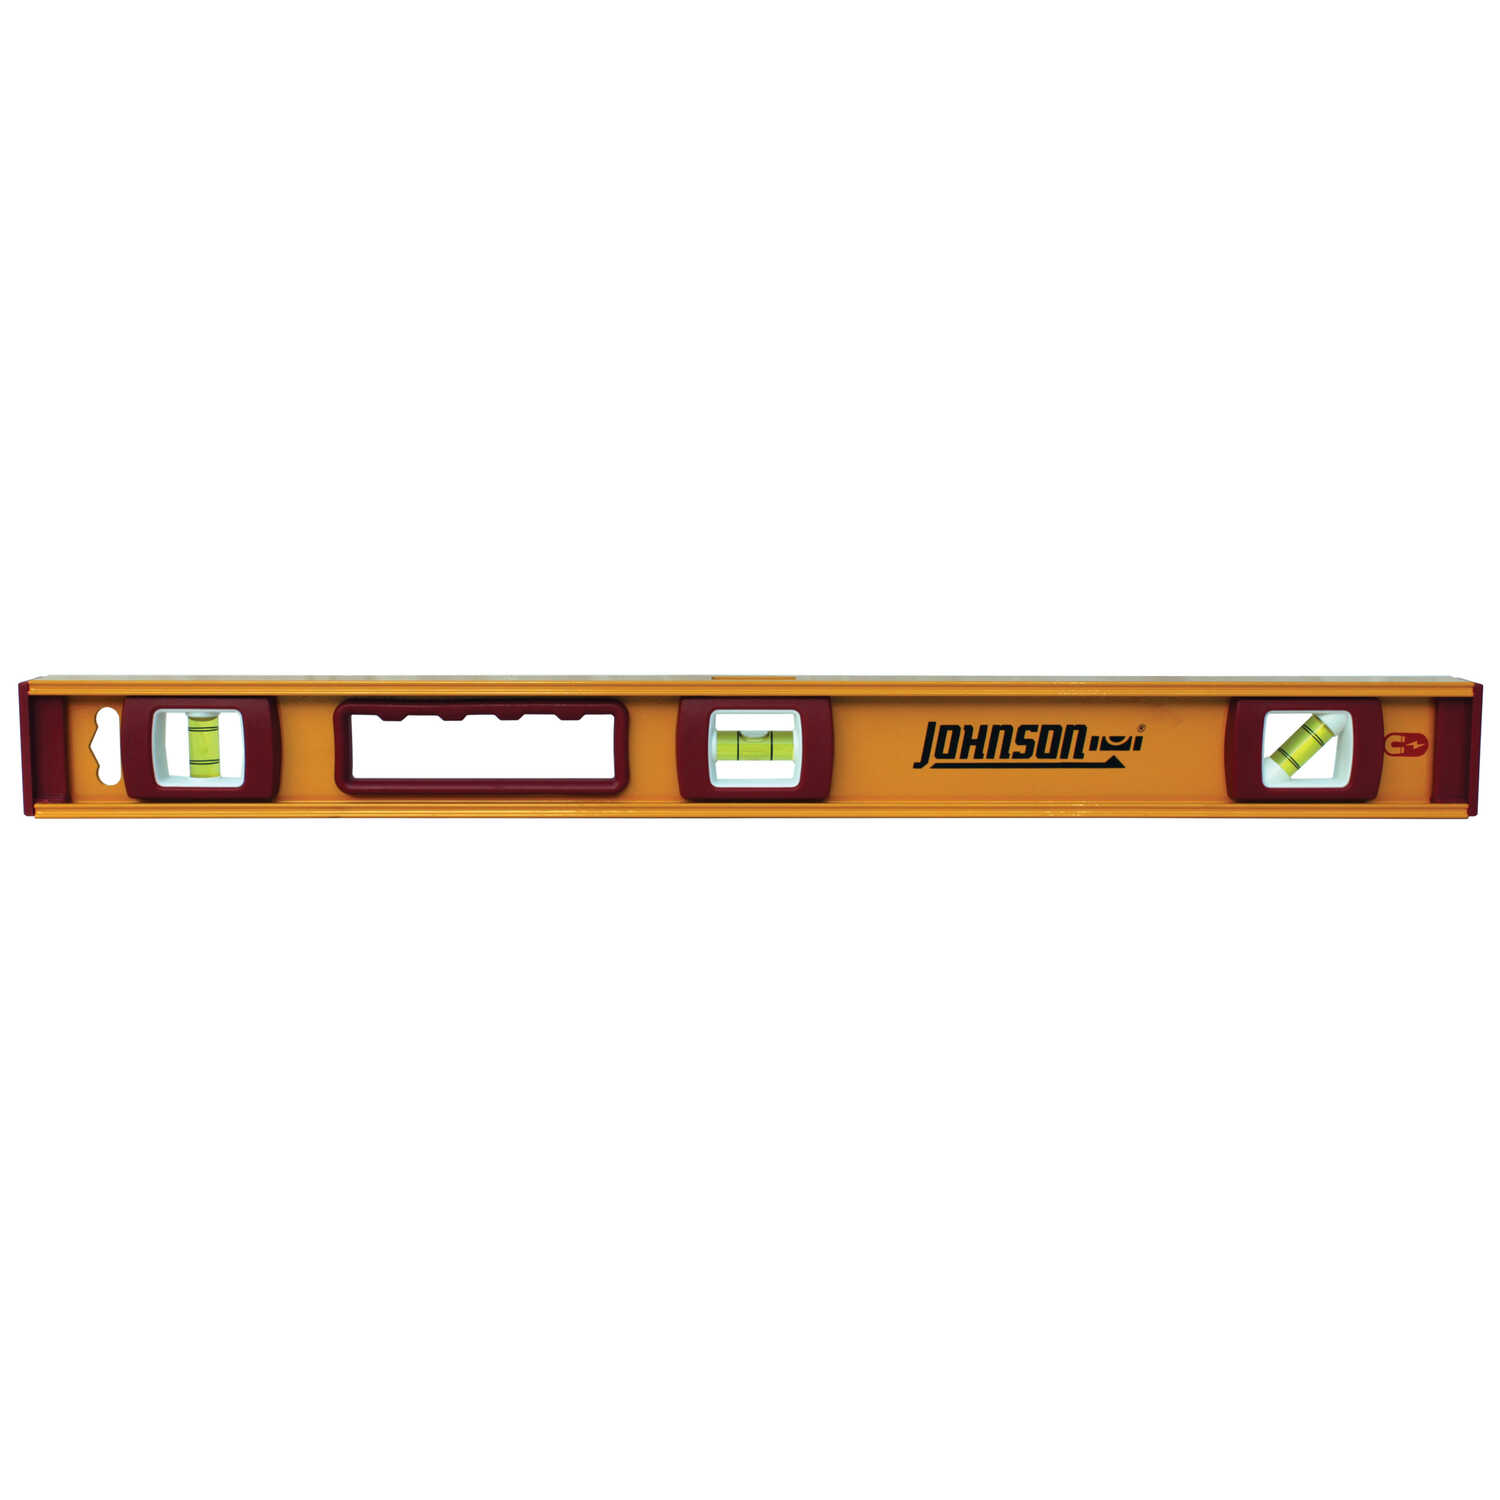 Johnson  24 in. Aluminum  I-Beam  Level  3